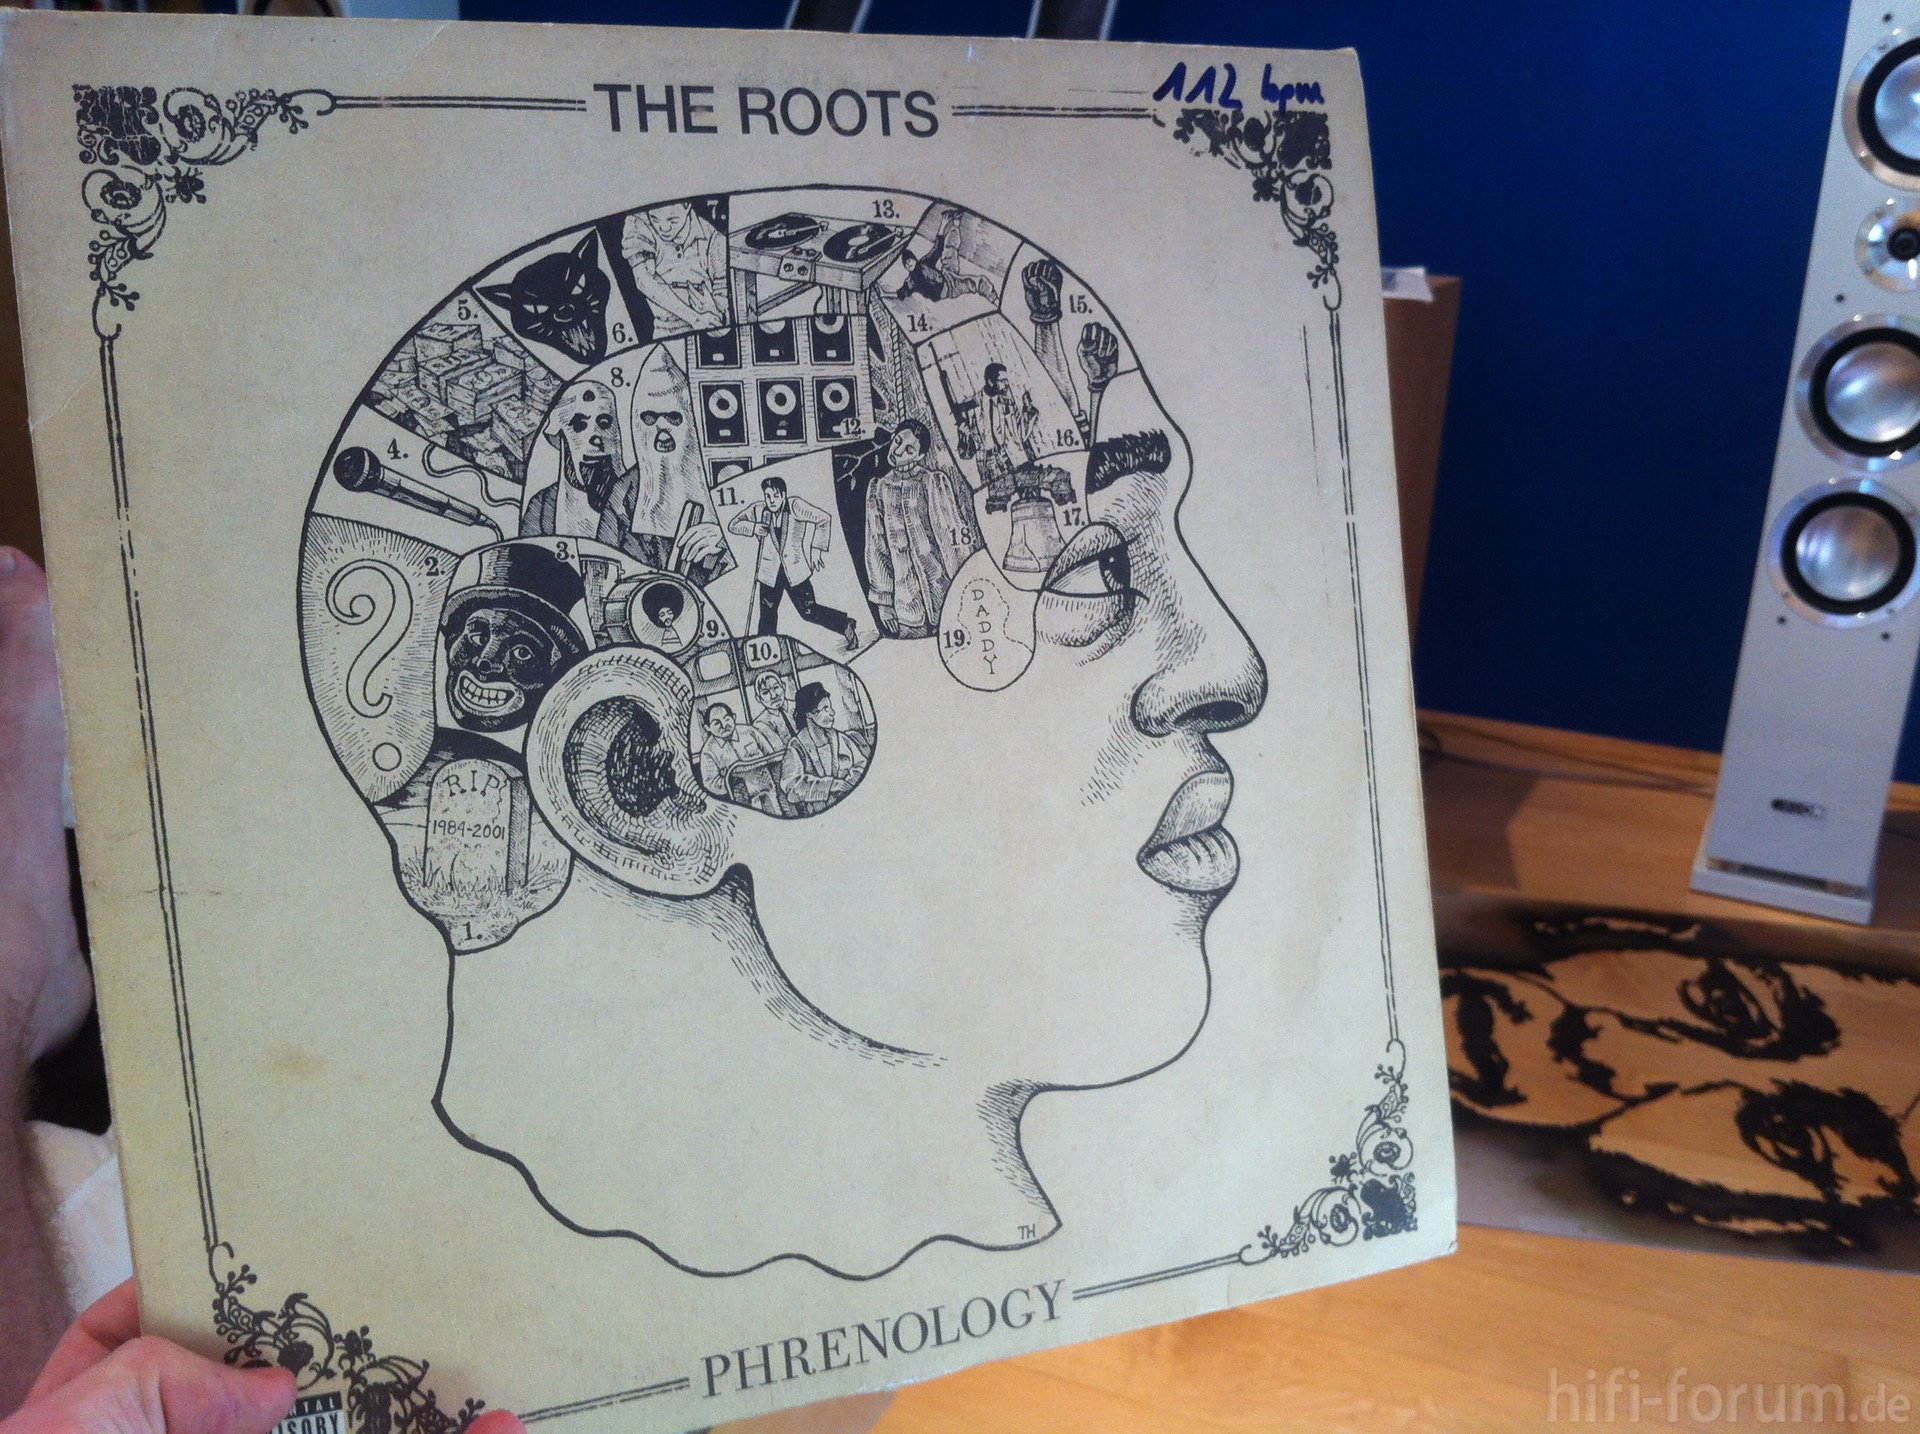 The Roots Phrenology Vinyl Hifiklassiker Hiphop Lp